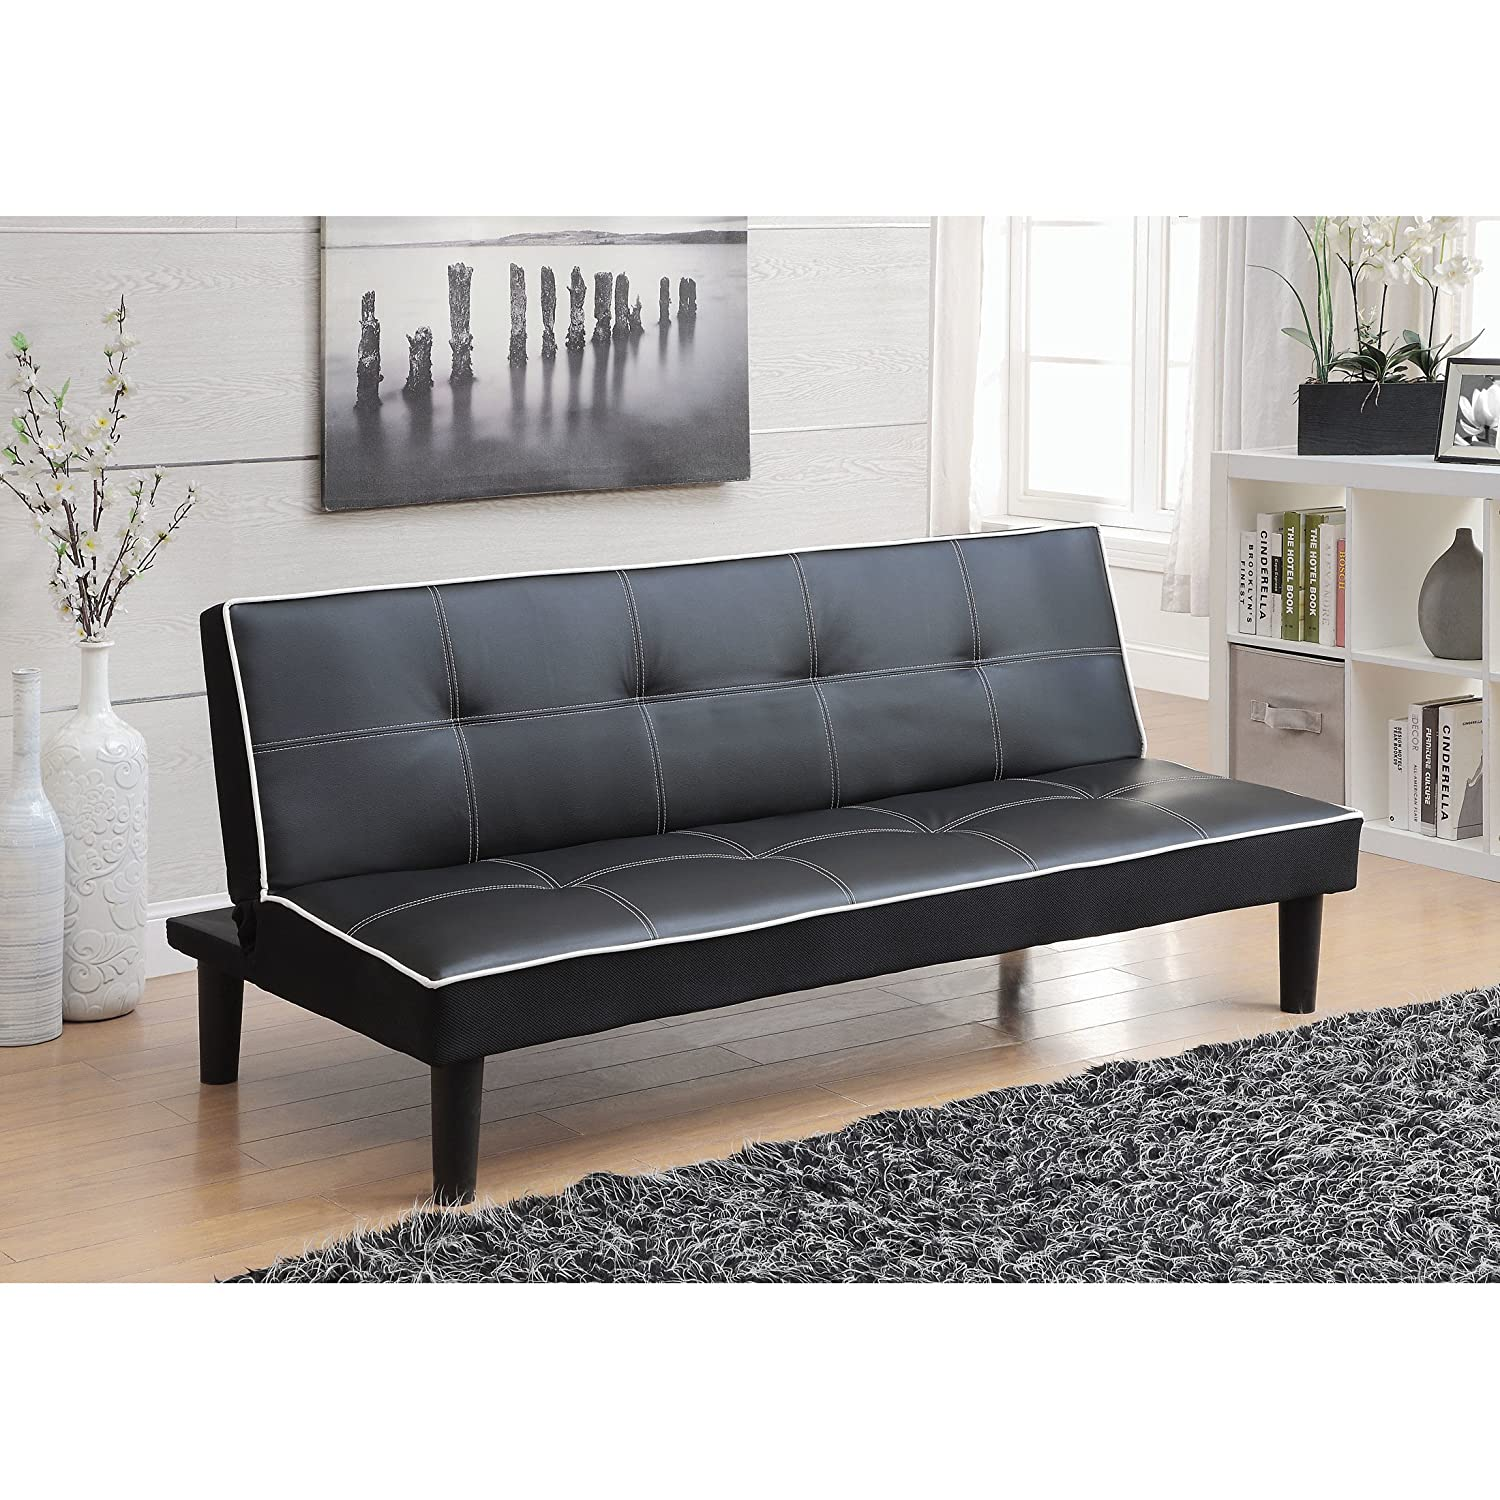 Amazon Convertible Design Ailith Leather Sleeper Sofa Made w